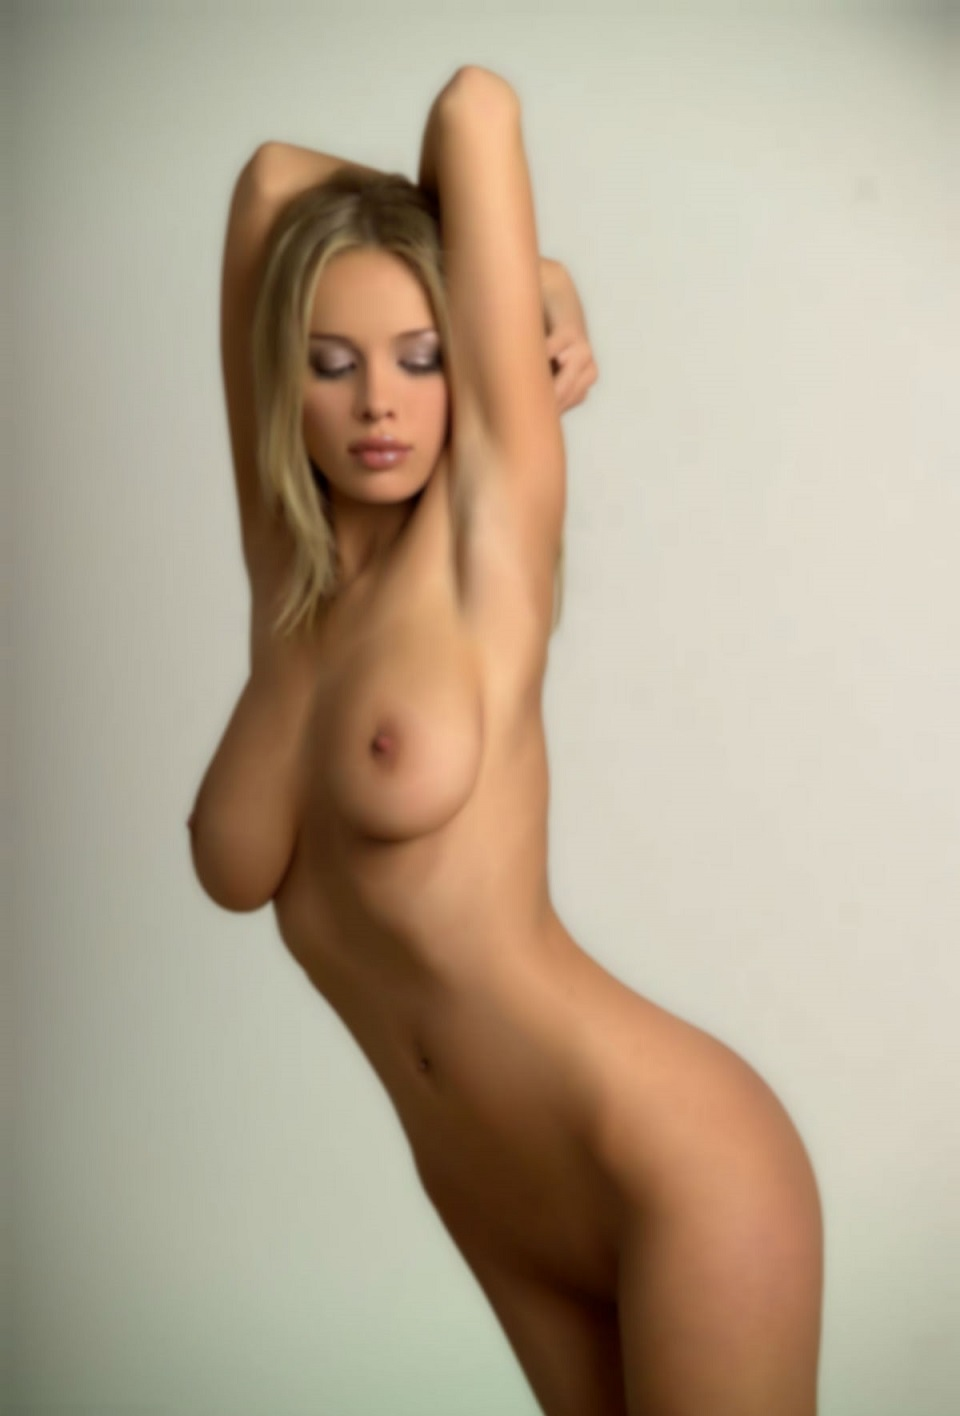 french amateur porn escort girl in paris